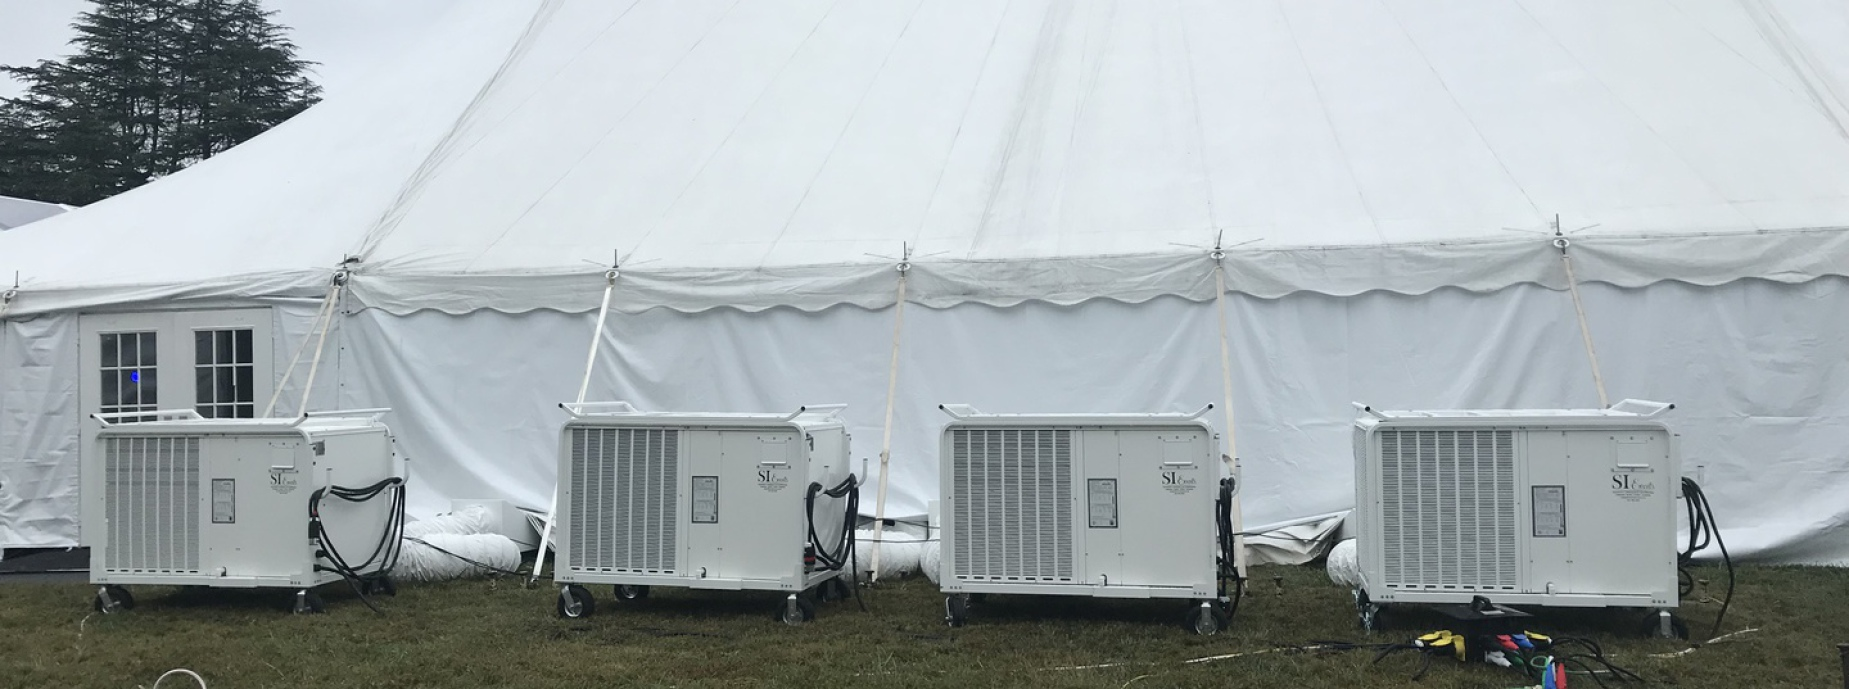 A/C and Heating services are available for tents barns u0026 buildings of all sizes. & meta nameu003d